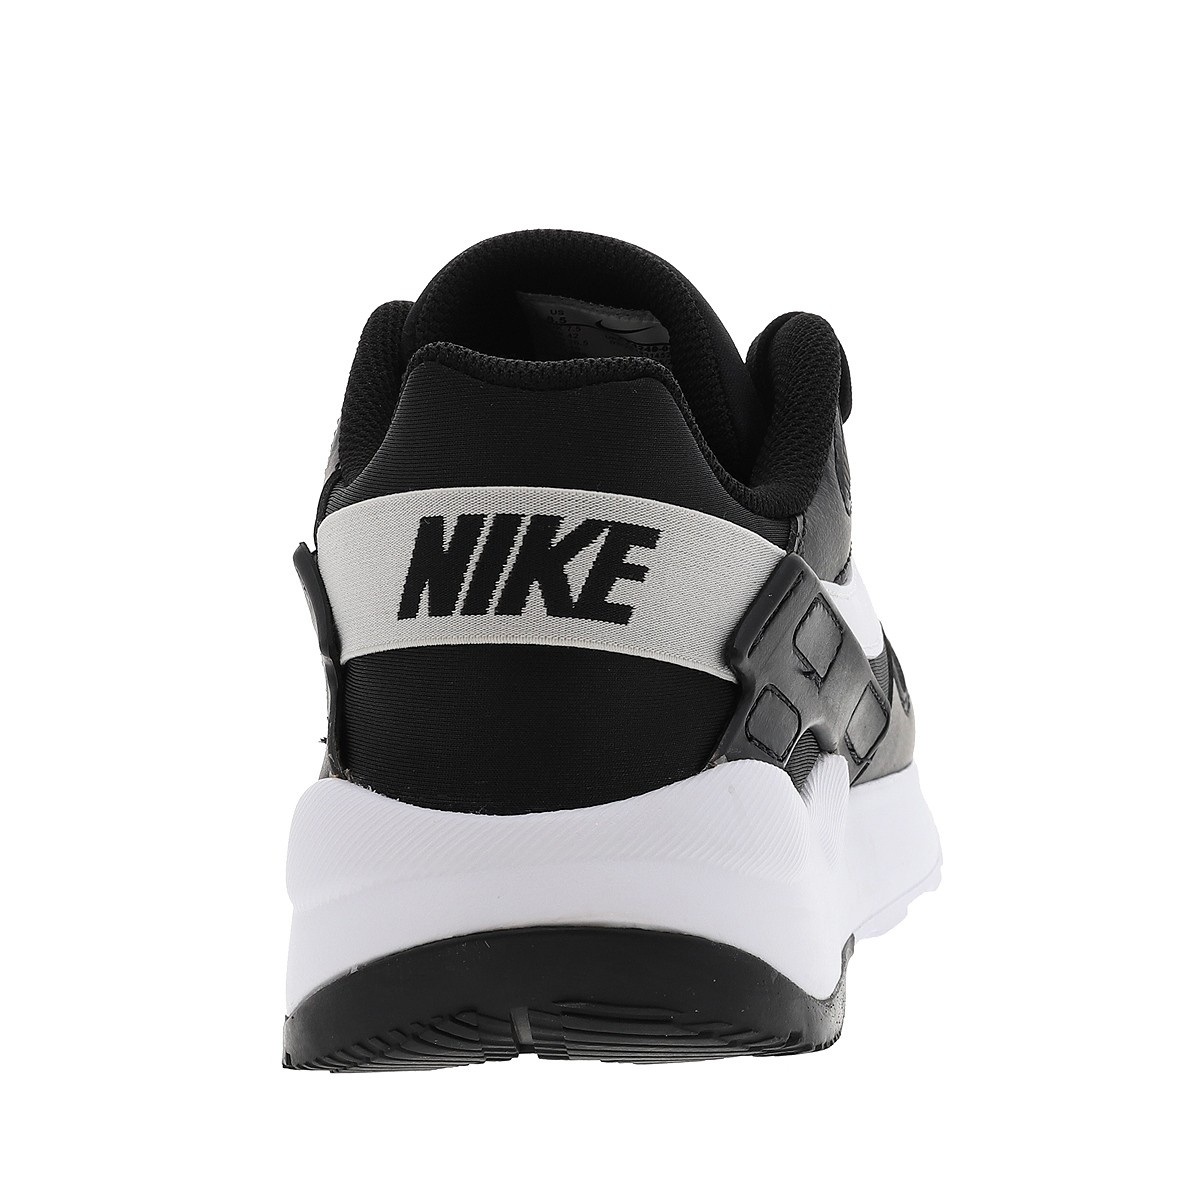 new specials wholesale dealer high quality NIKE Baskets LD Victory homme noir